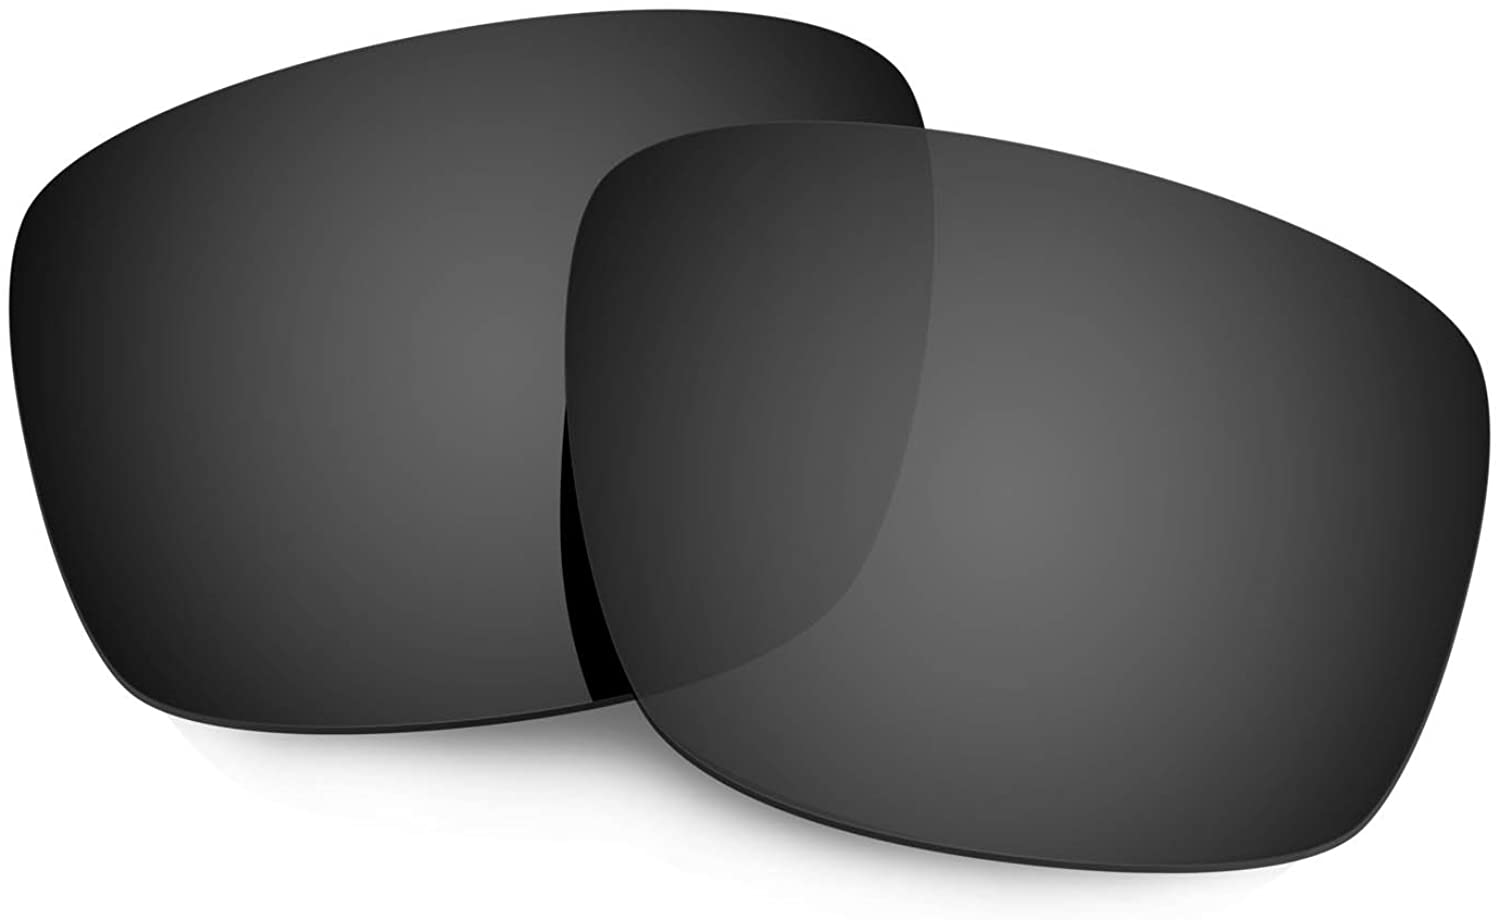 HKUCO Reinforce Replacement Lenses for Oakley Mainlink - 1 Pair